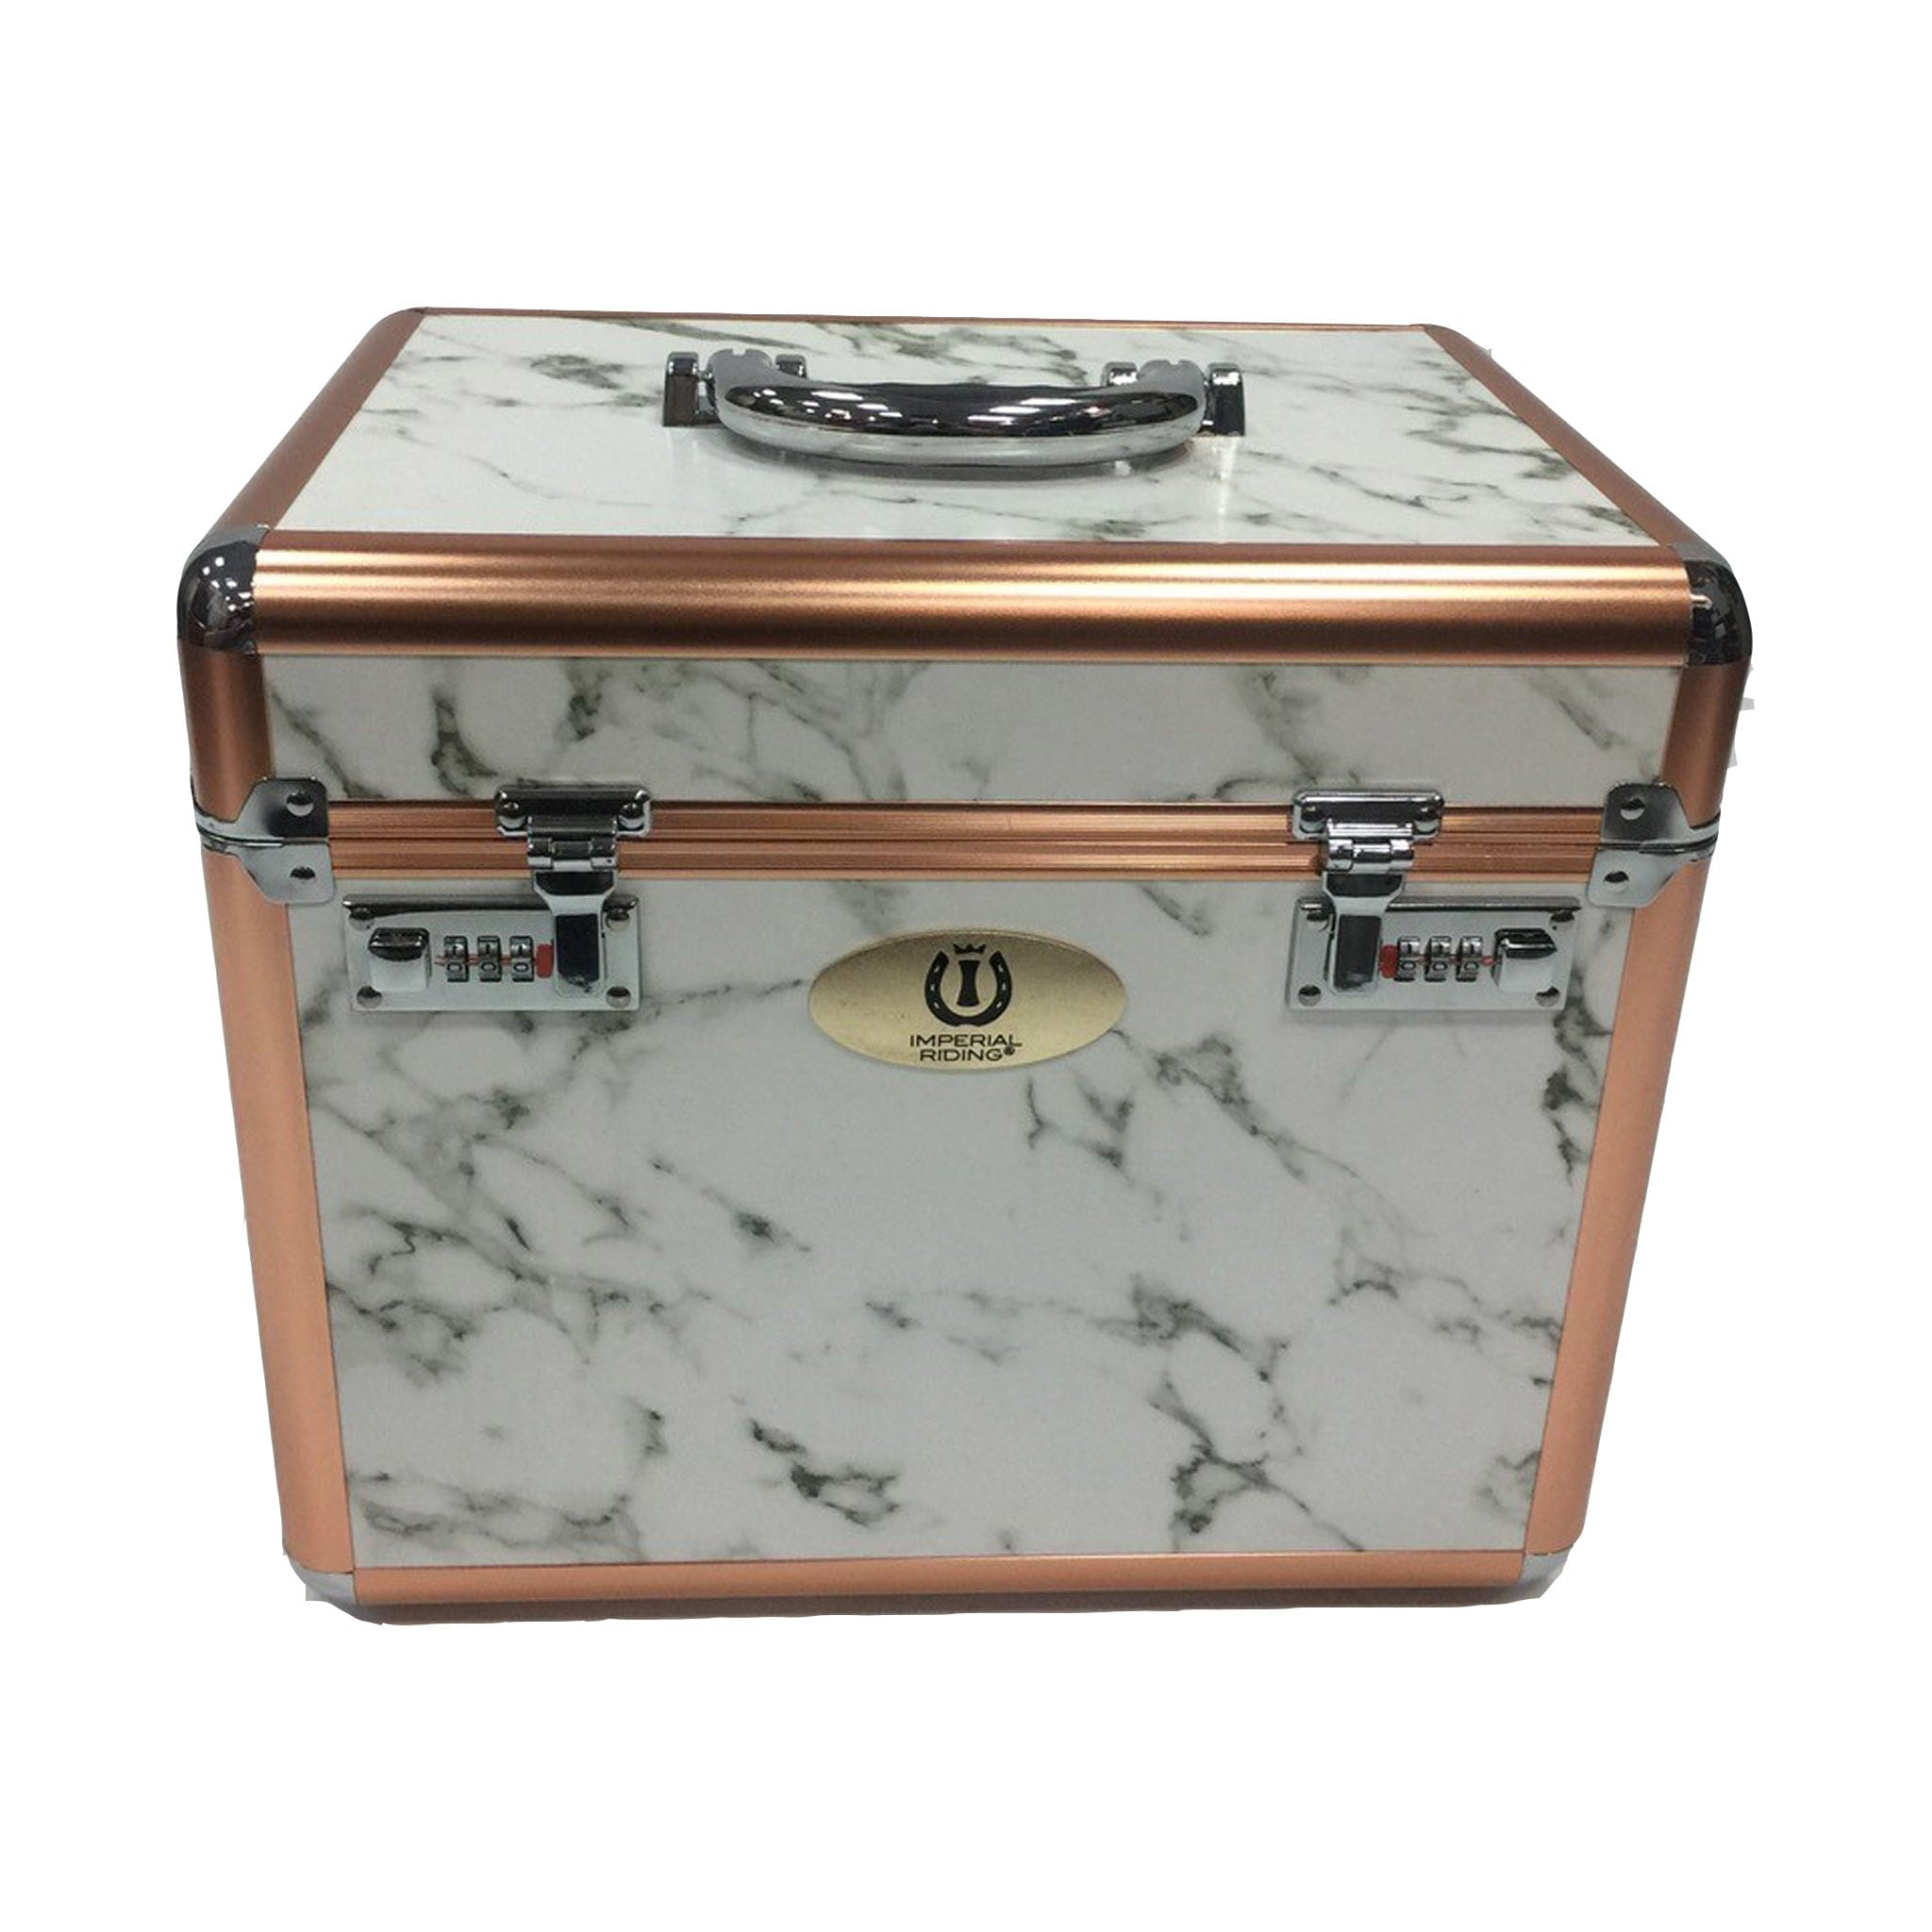 Imperial Riding Shiny Grooming Box Marble Rose Gold ST68120002